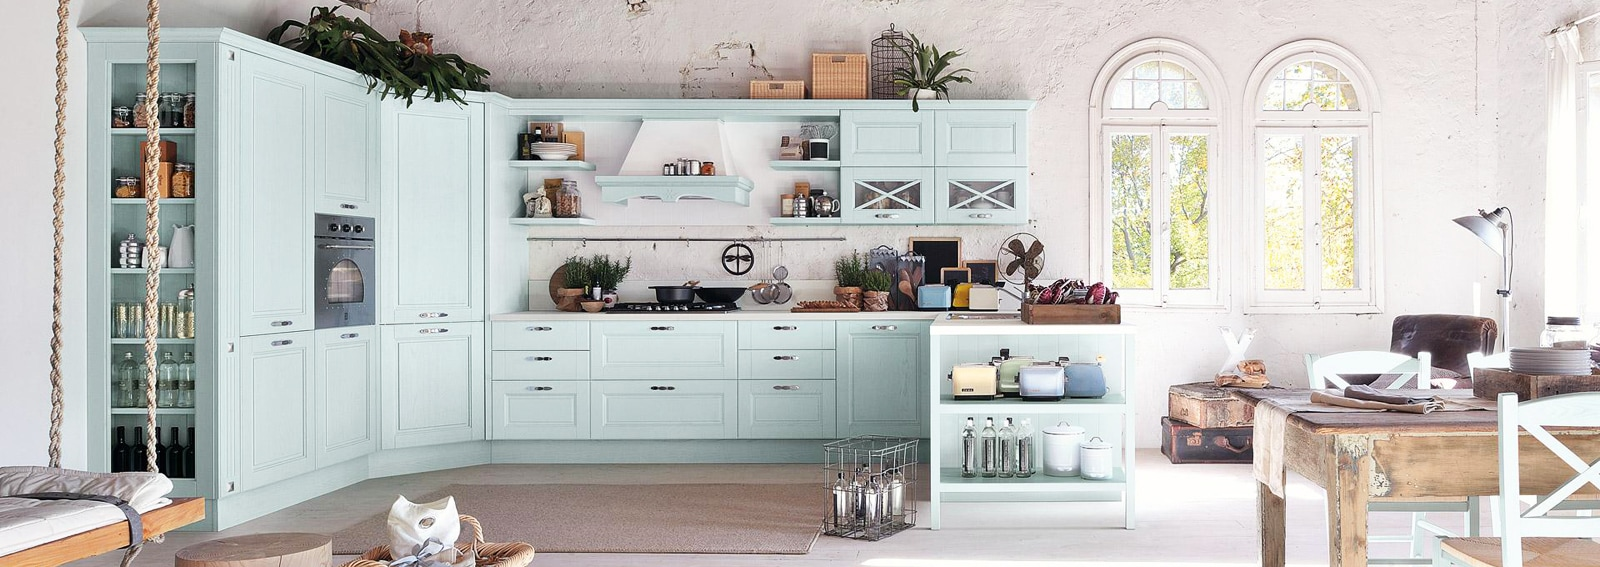 Cucine Contry. Affordable Vincent Grey Kitchen With Cucine Contry ...